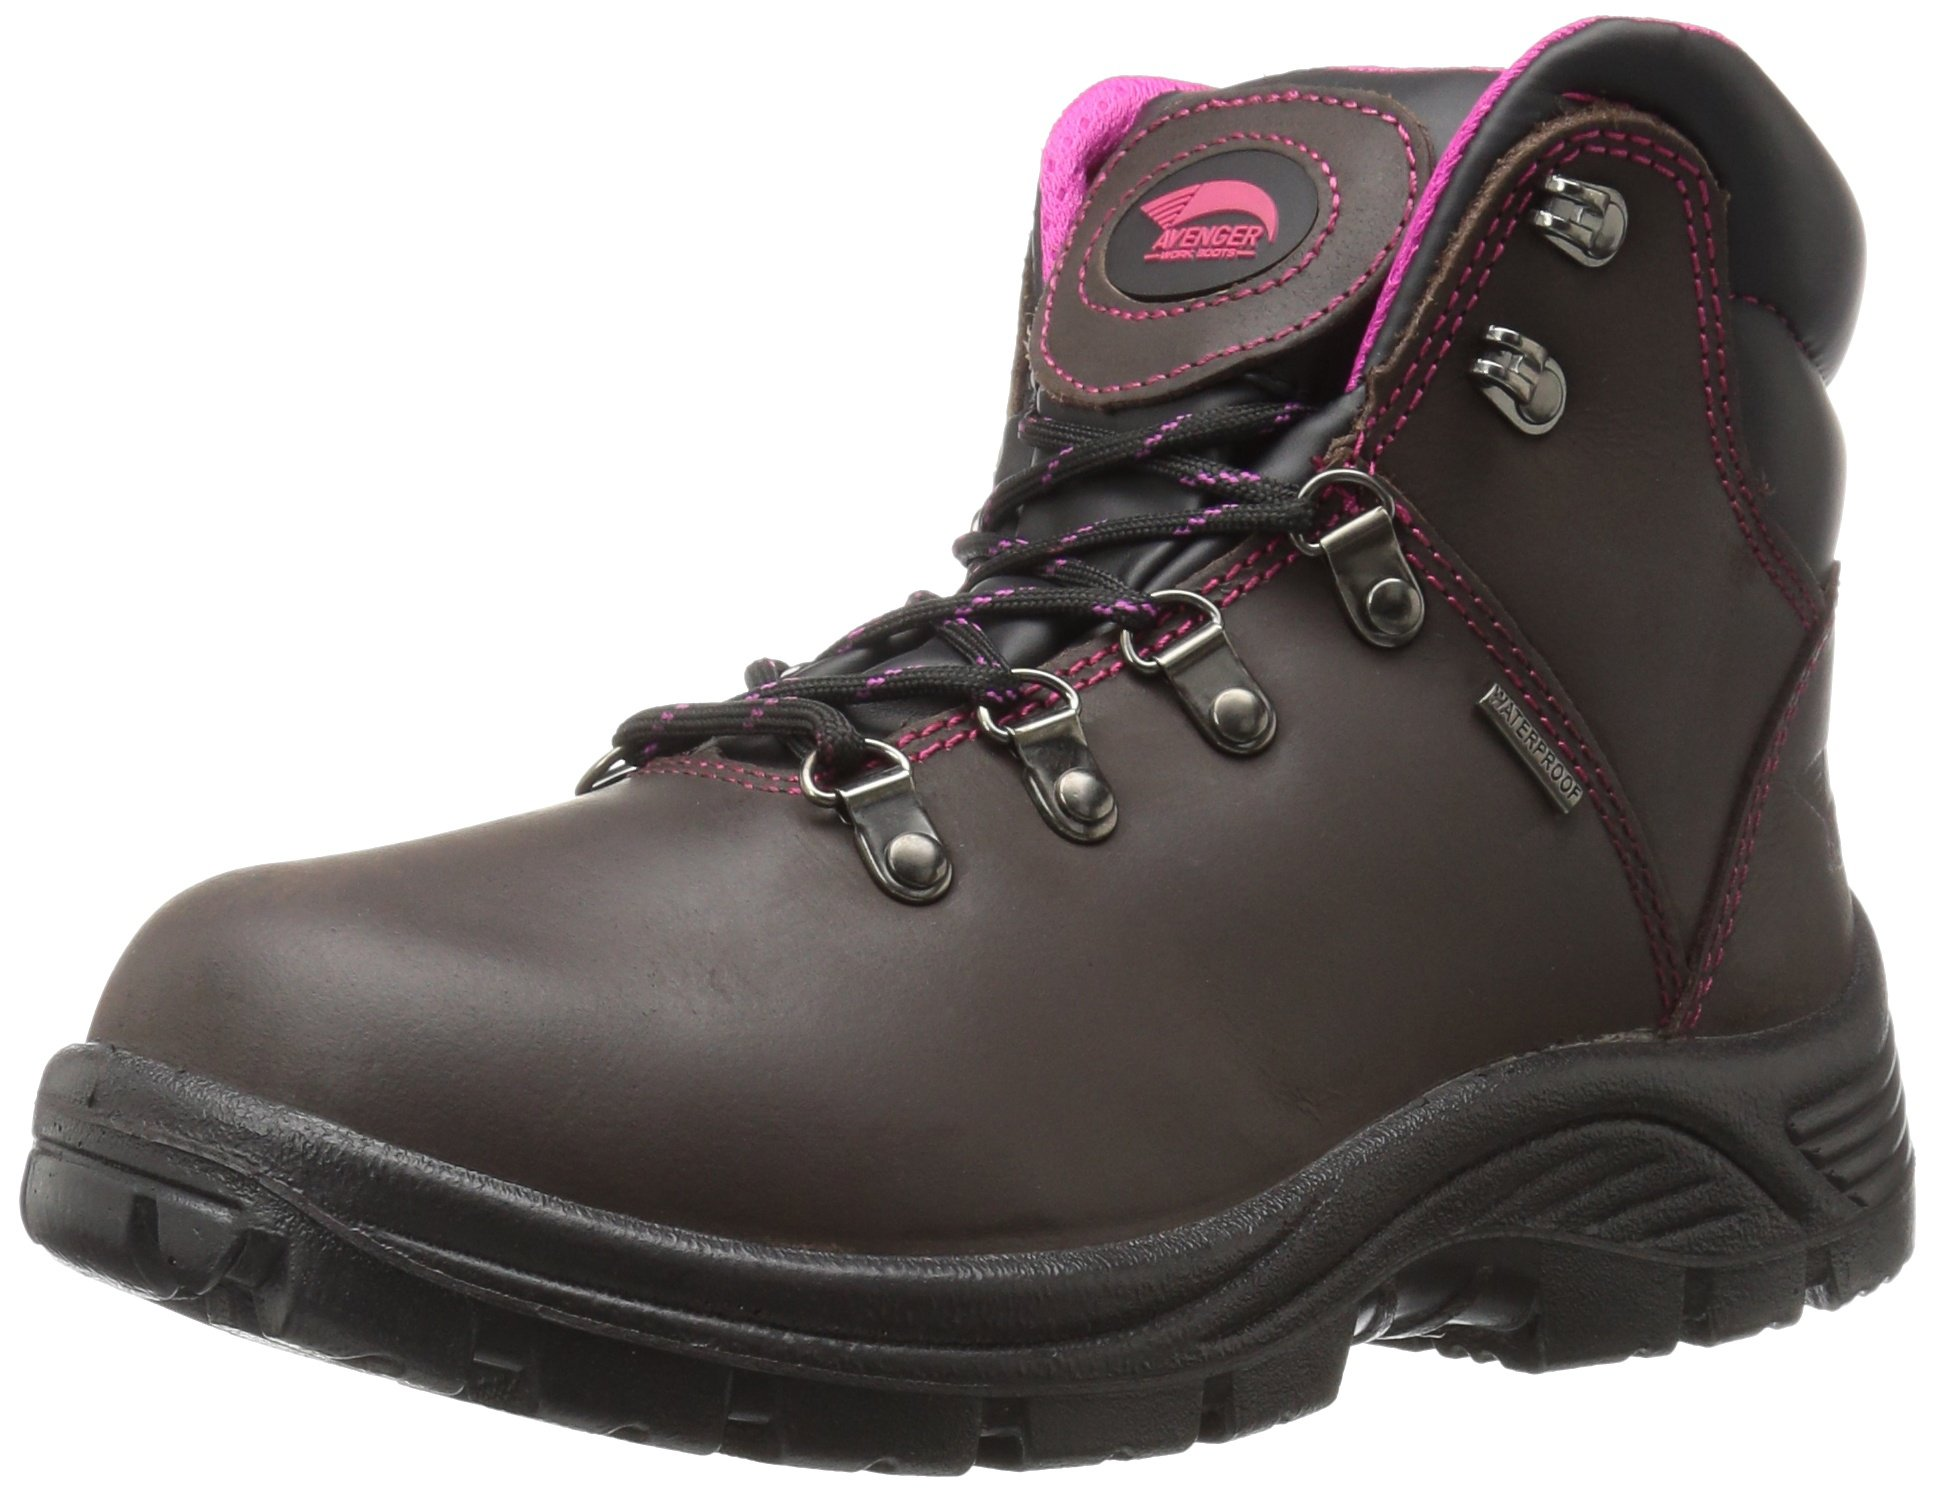 Avenger Safety Footwear Women's Avenger 7675 Soft Toe Waterproof SR EH Hiker Industrial and Construction Shoe, Brown, 6.5 2E US